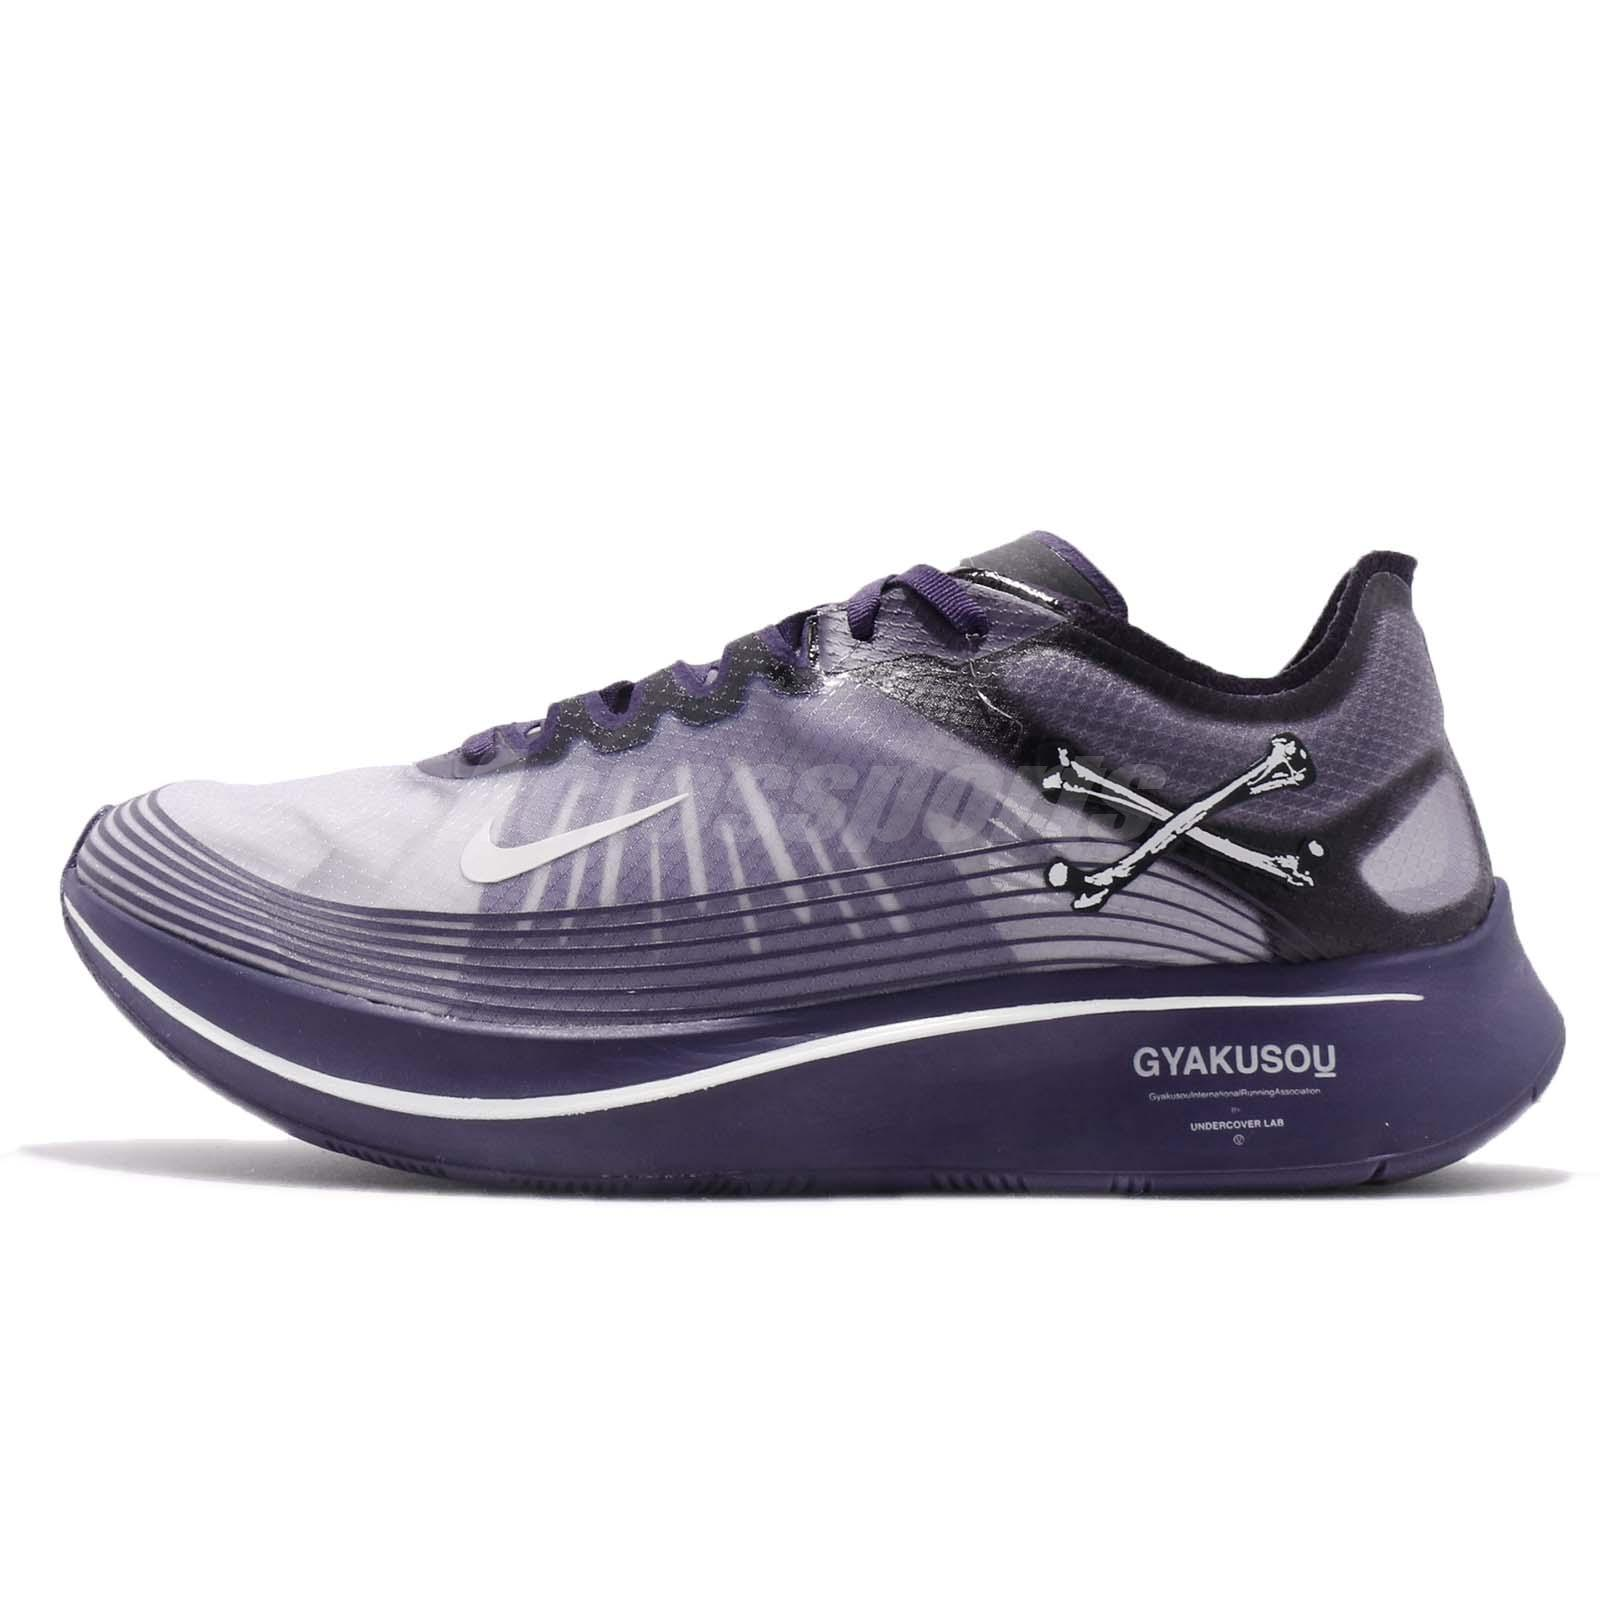 factory price 7c6af 767a9 Nike Zoom Fly Undercover Gyakusou Ink Purple Grey Mens Running Shoes AR4349 -500